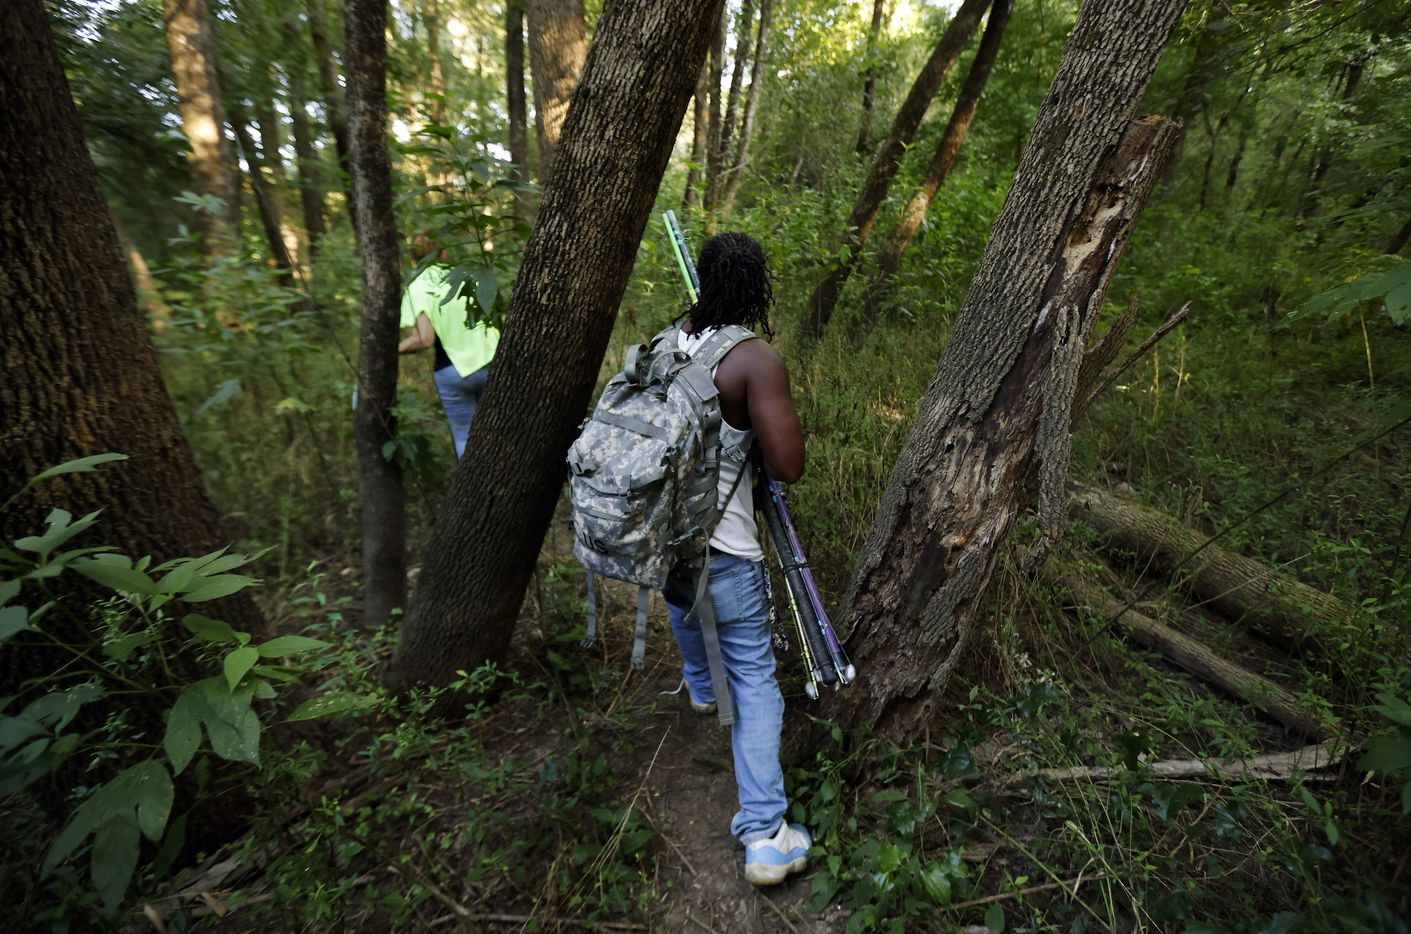 Odell Allen hikes through the Great Trinity Forest to a favorite alligator gar fishing spot along the Trinity River in Dallas, Wednesday, September 1, 2021. (Tom Fox/The Dallas Morning News)